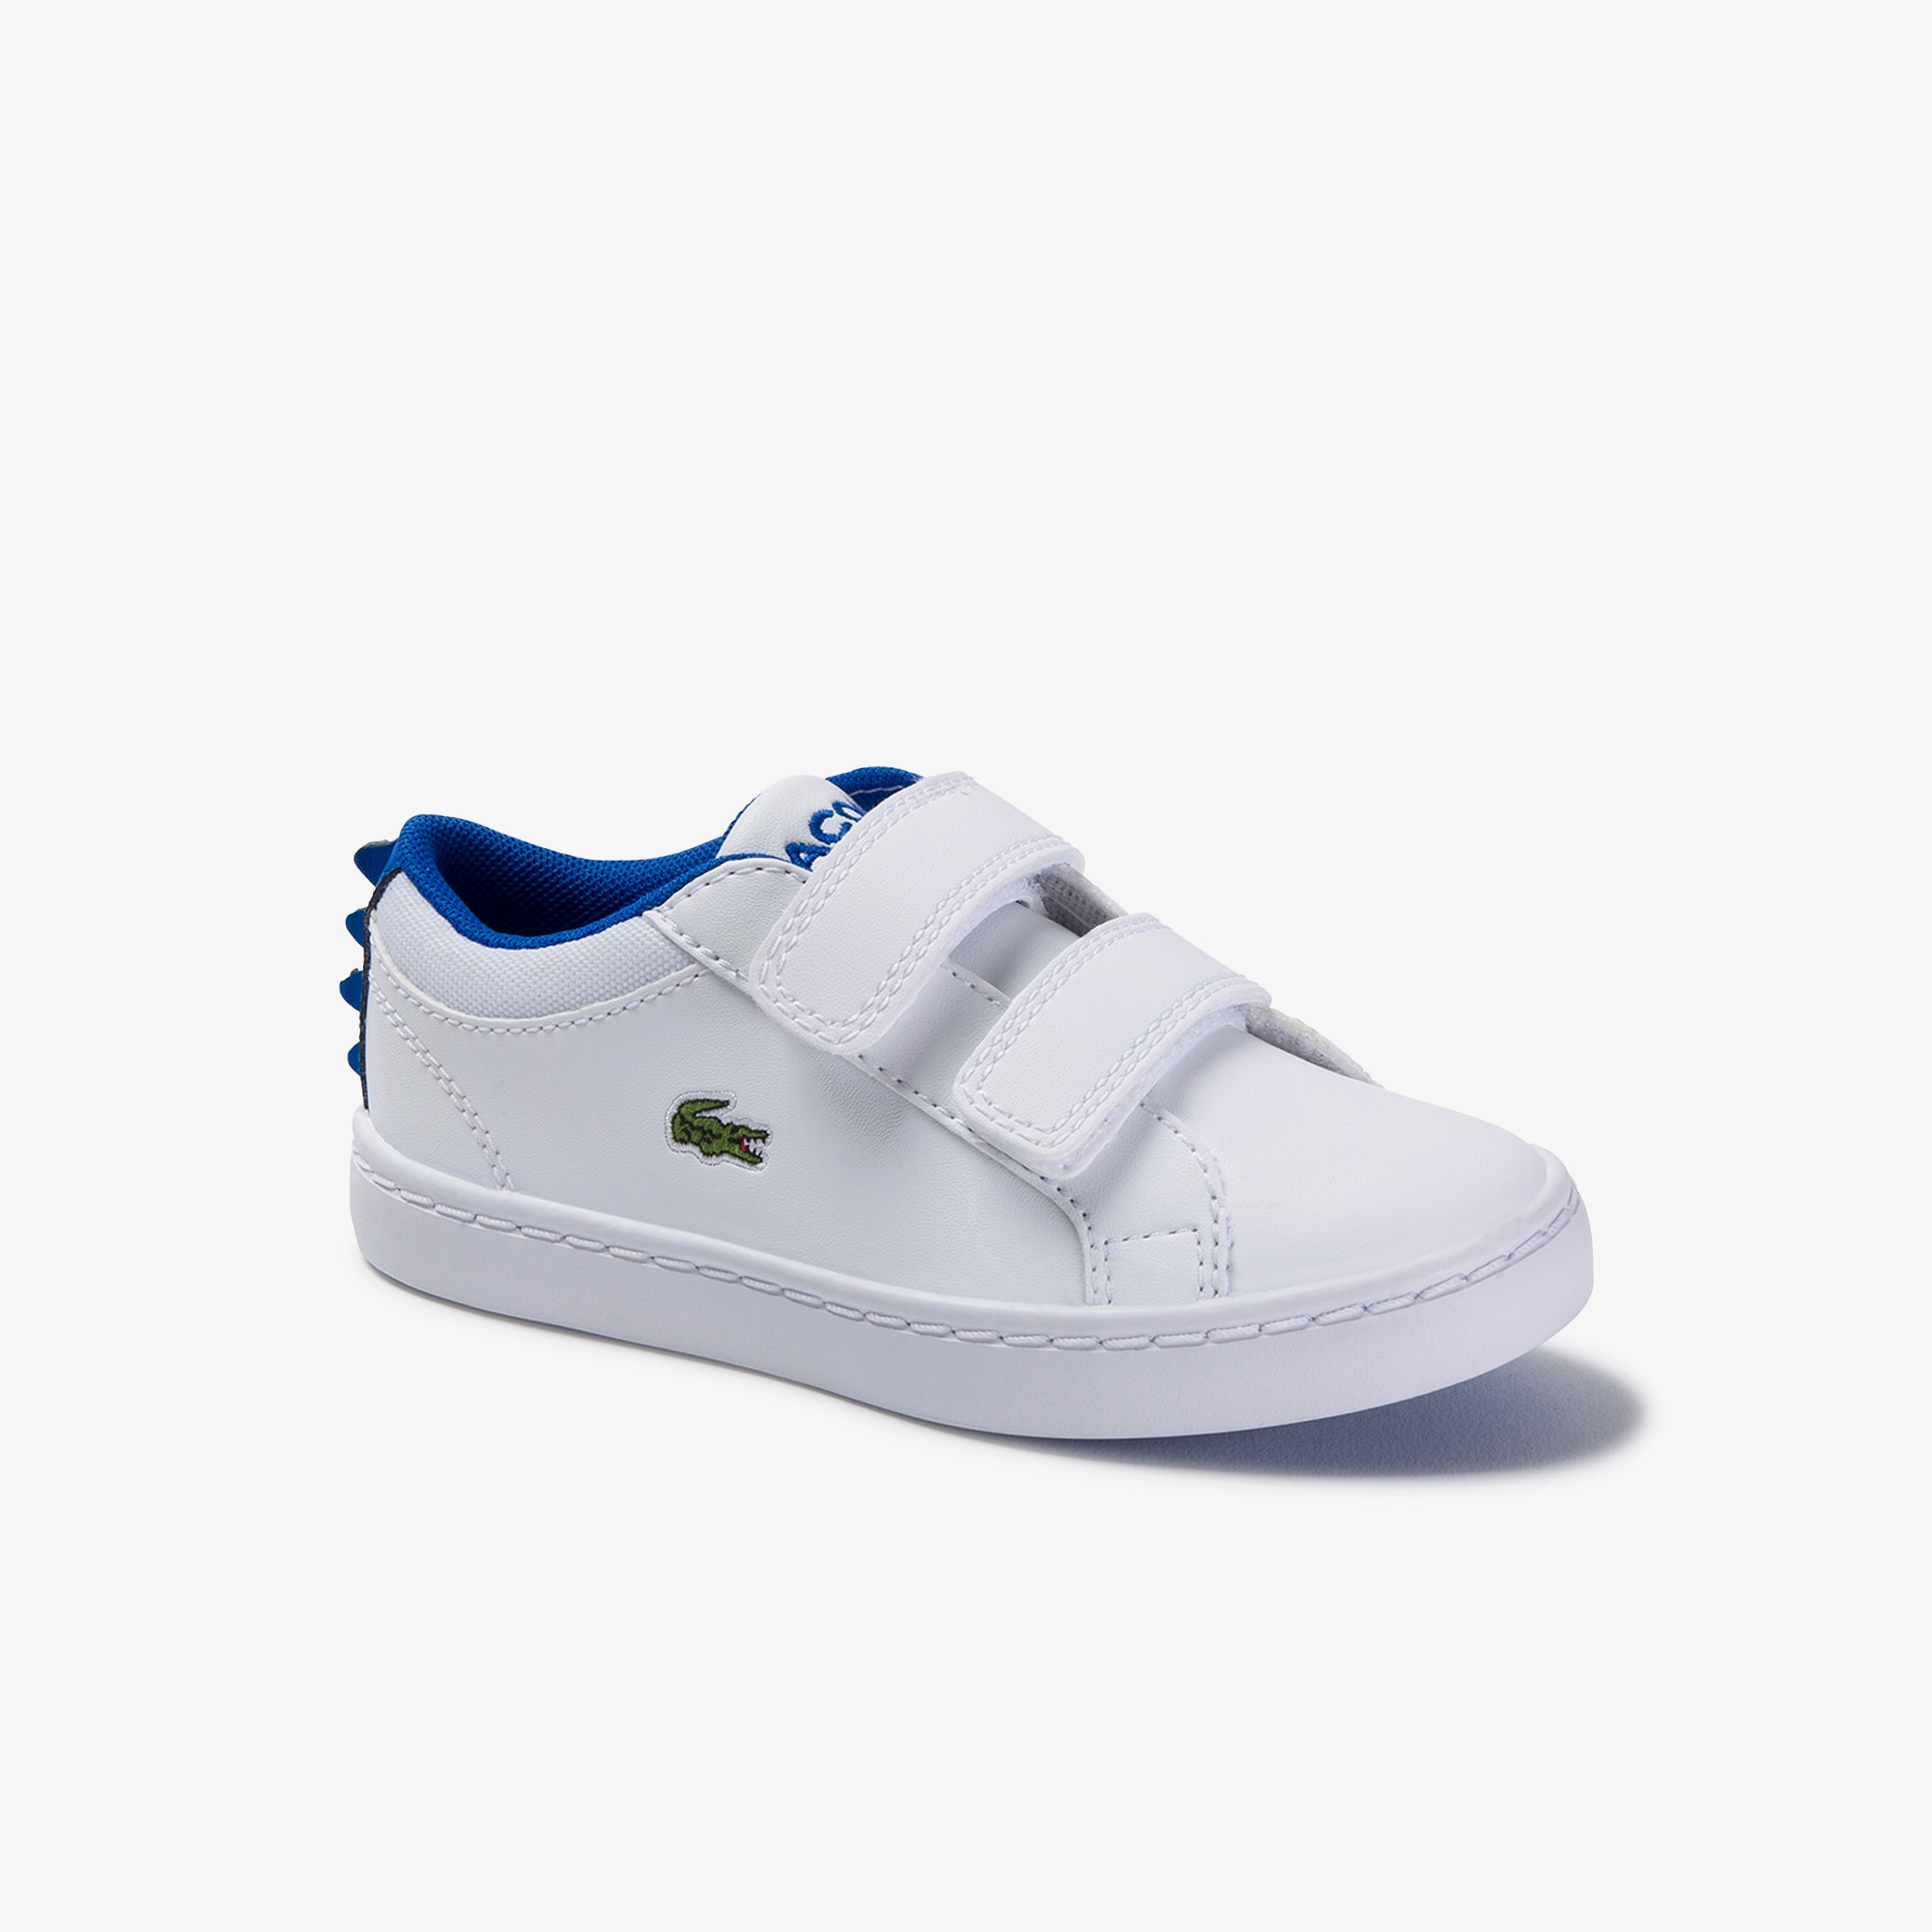 Kids Shoes | Footwear Collection | LACOSTE